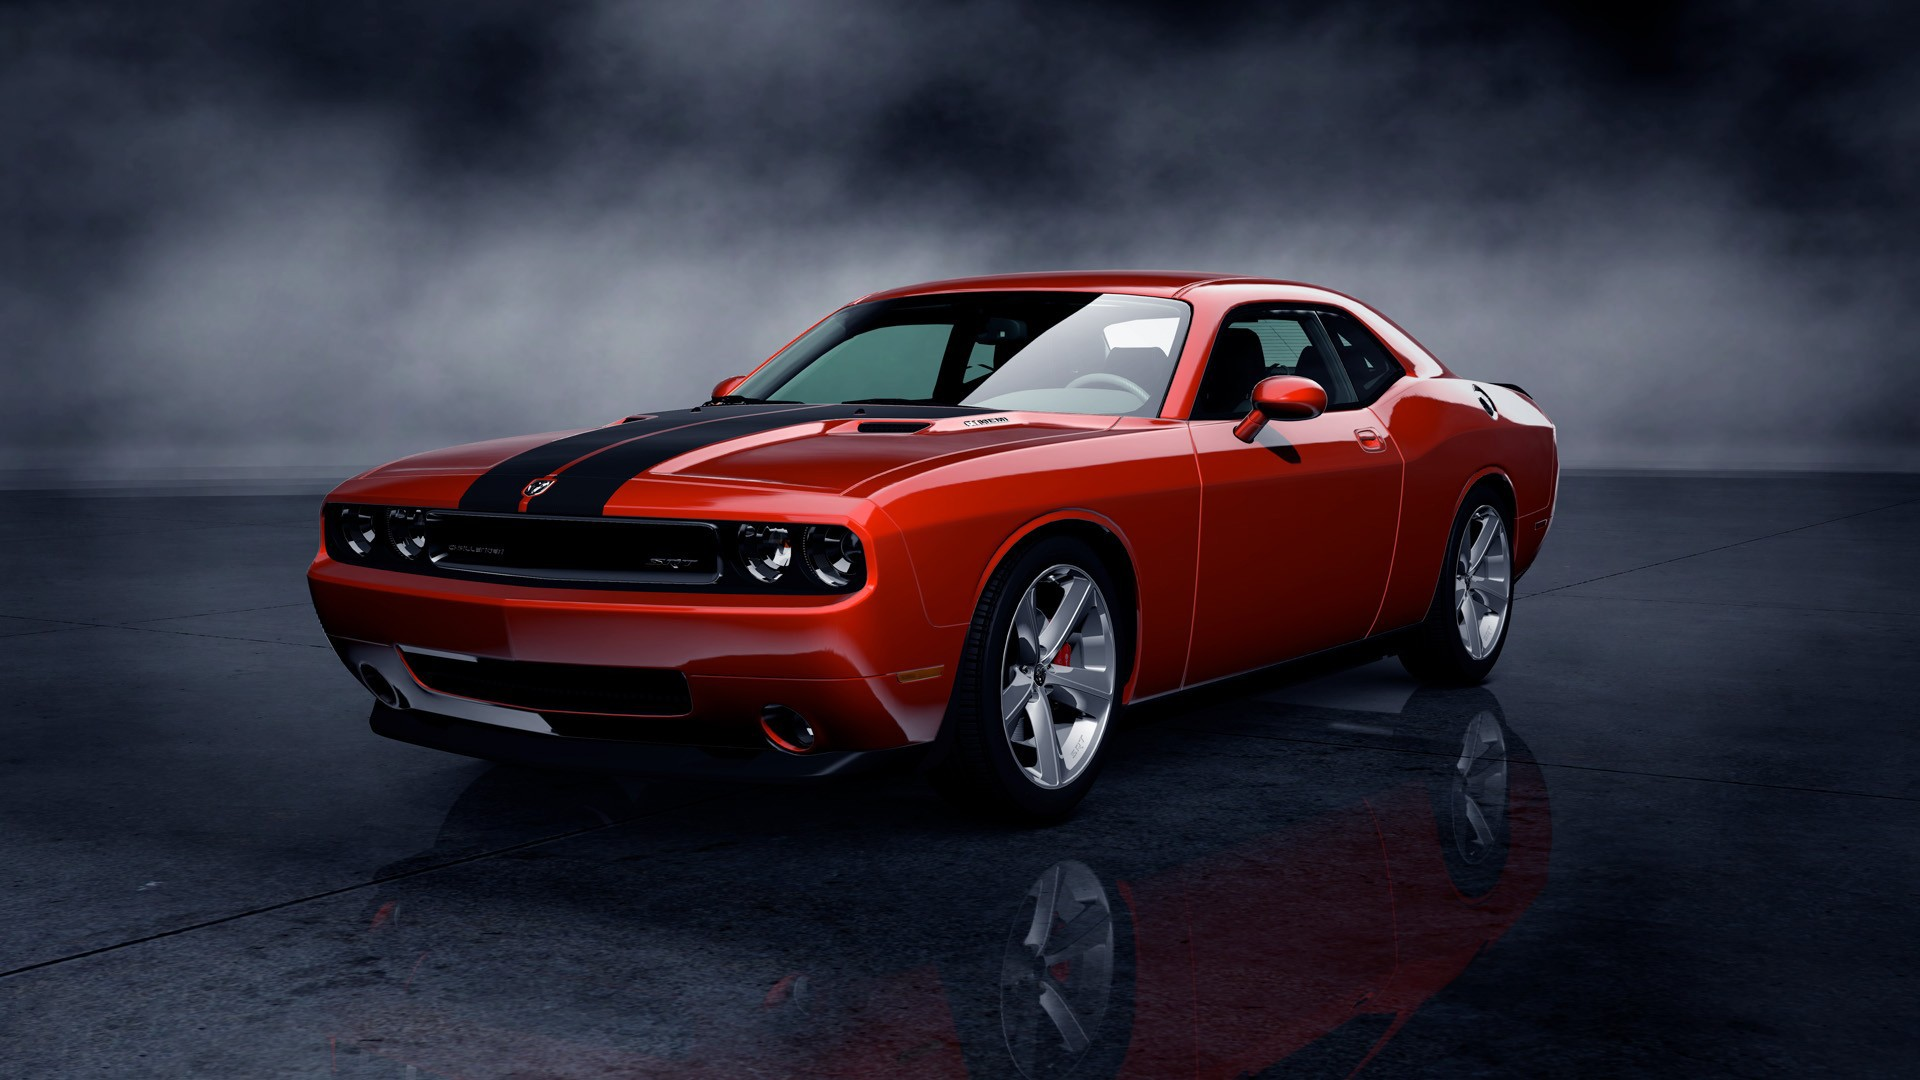 Challenger Hd Wallpaper Dodge Challenger Wallpaper Hd Sf Wallpaper